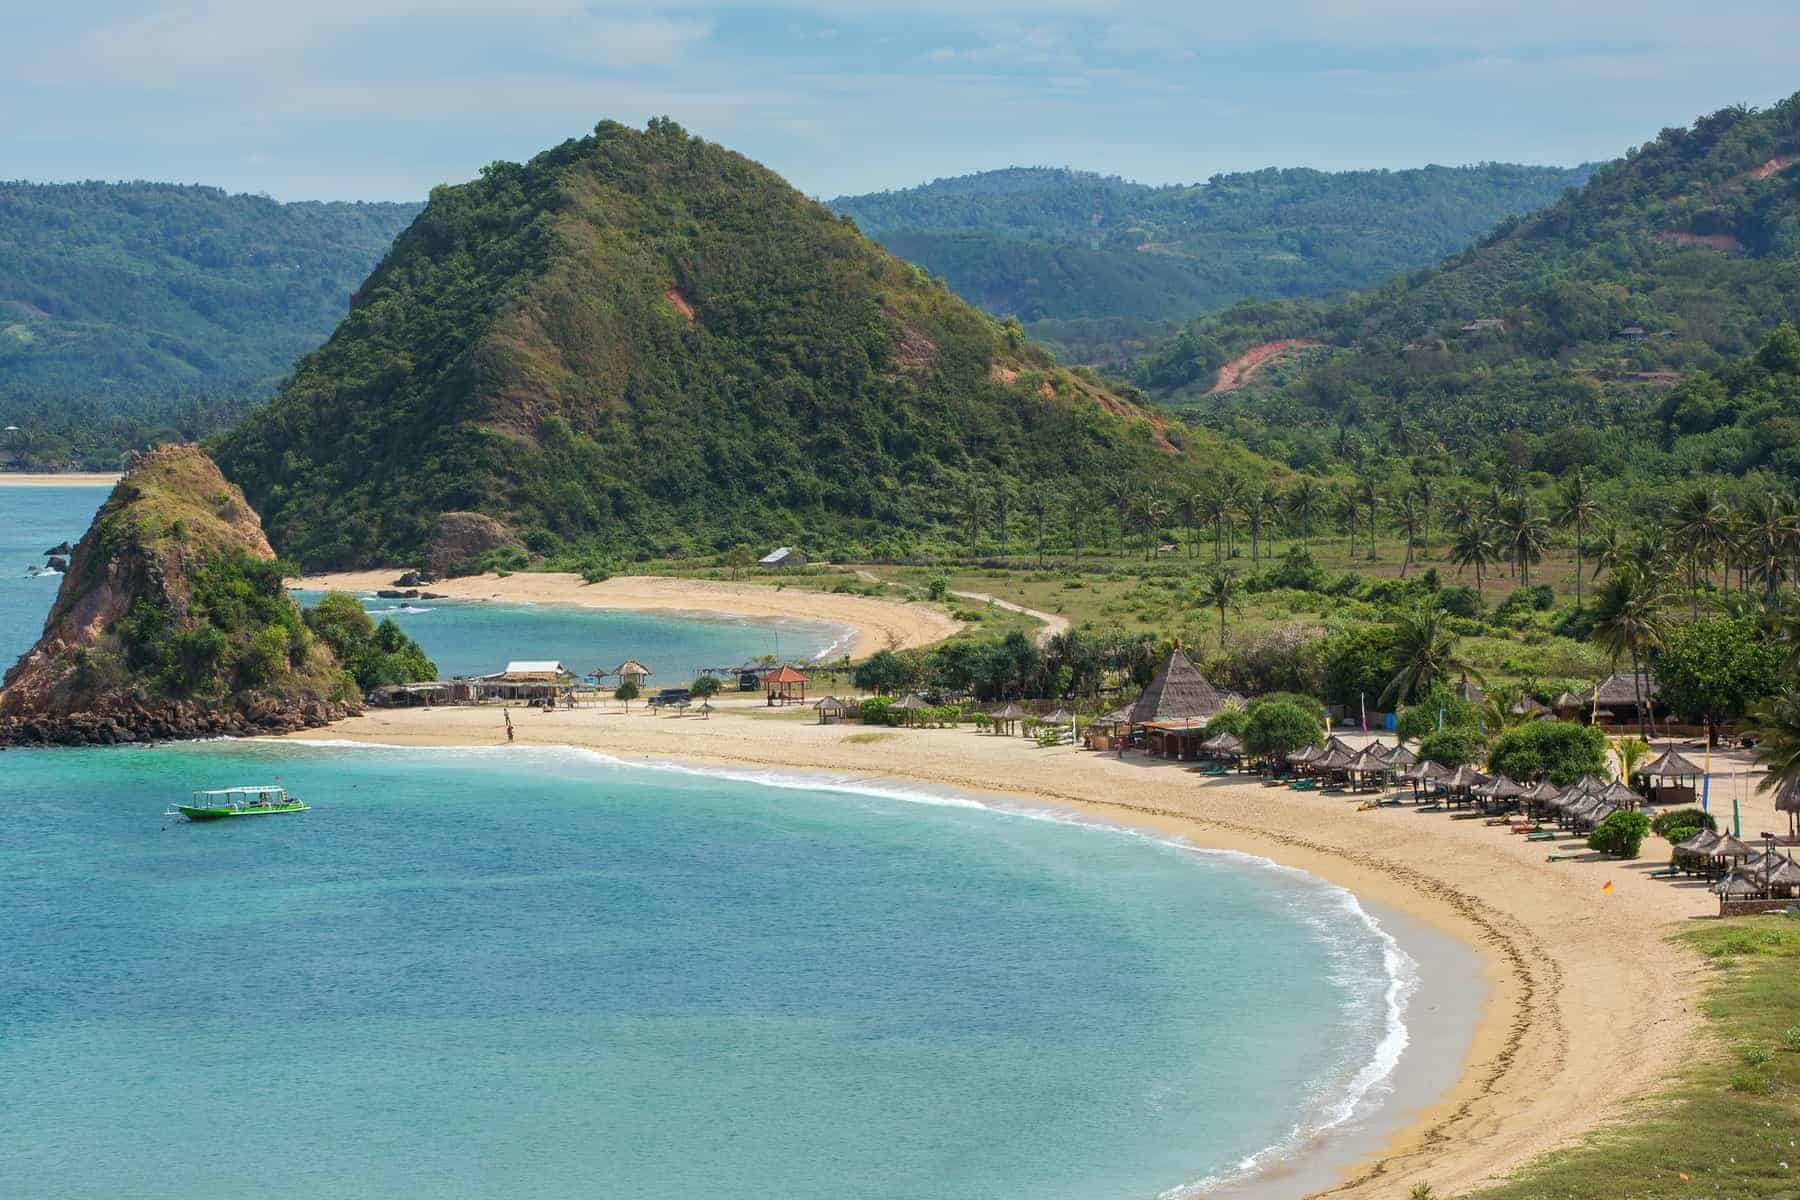 Tropical resort on Kuta sand beach, Lombok, Indonesia